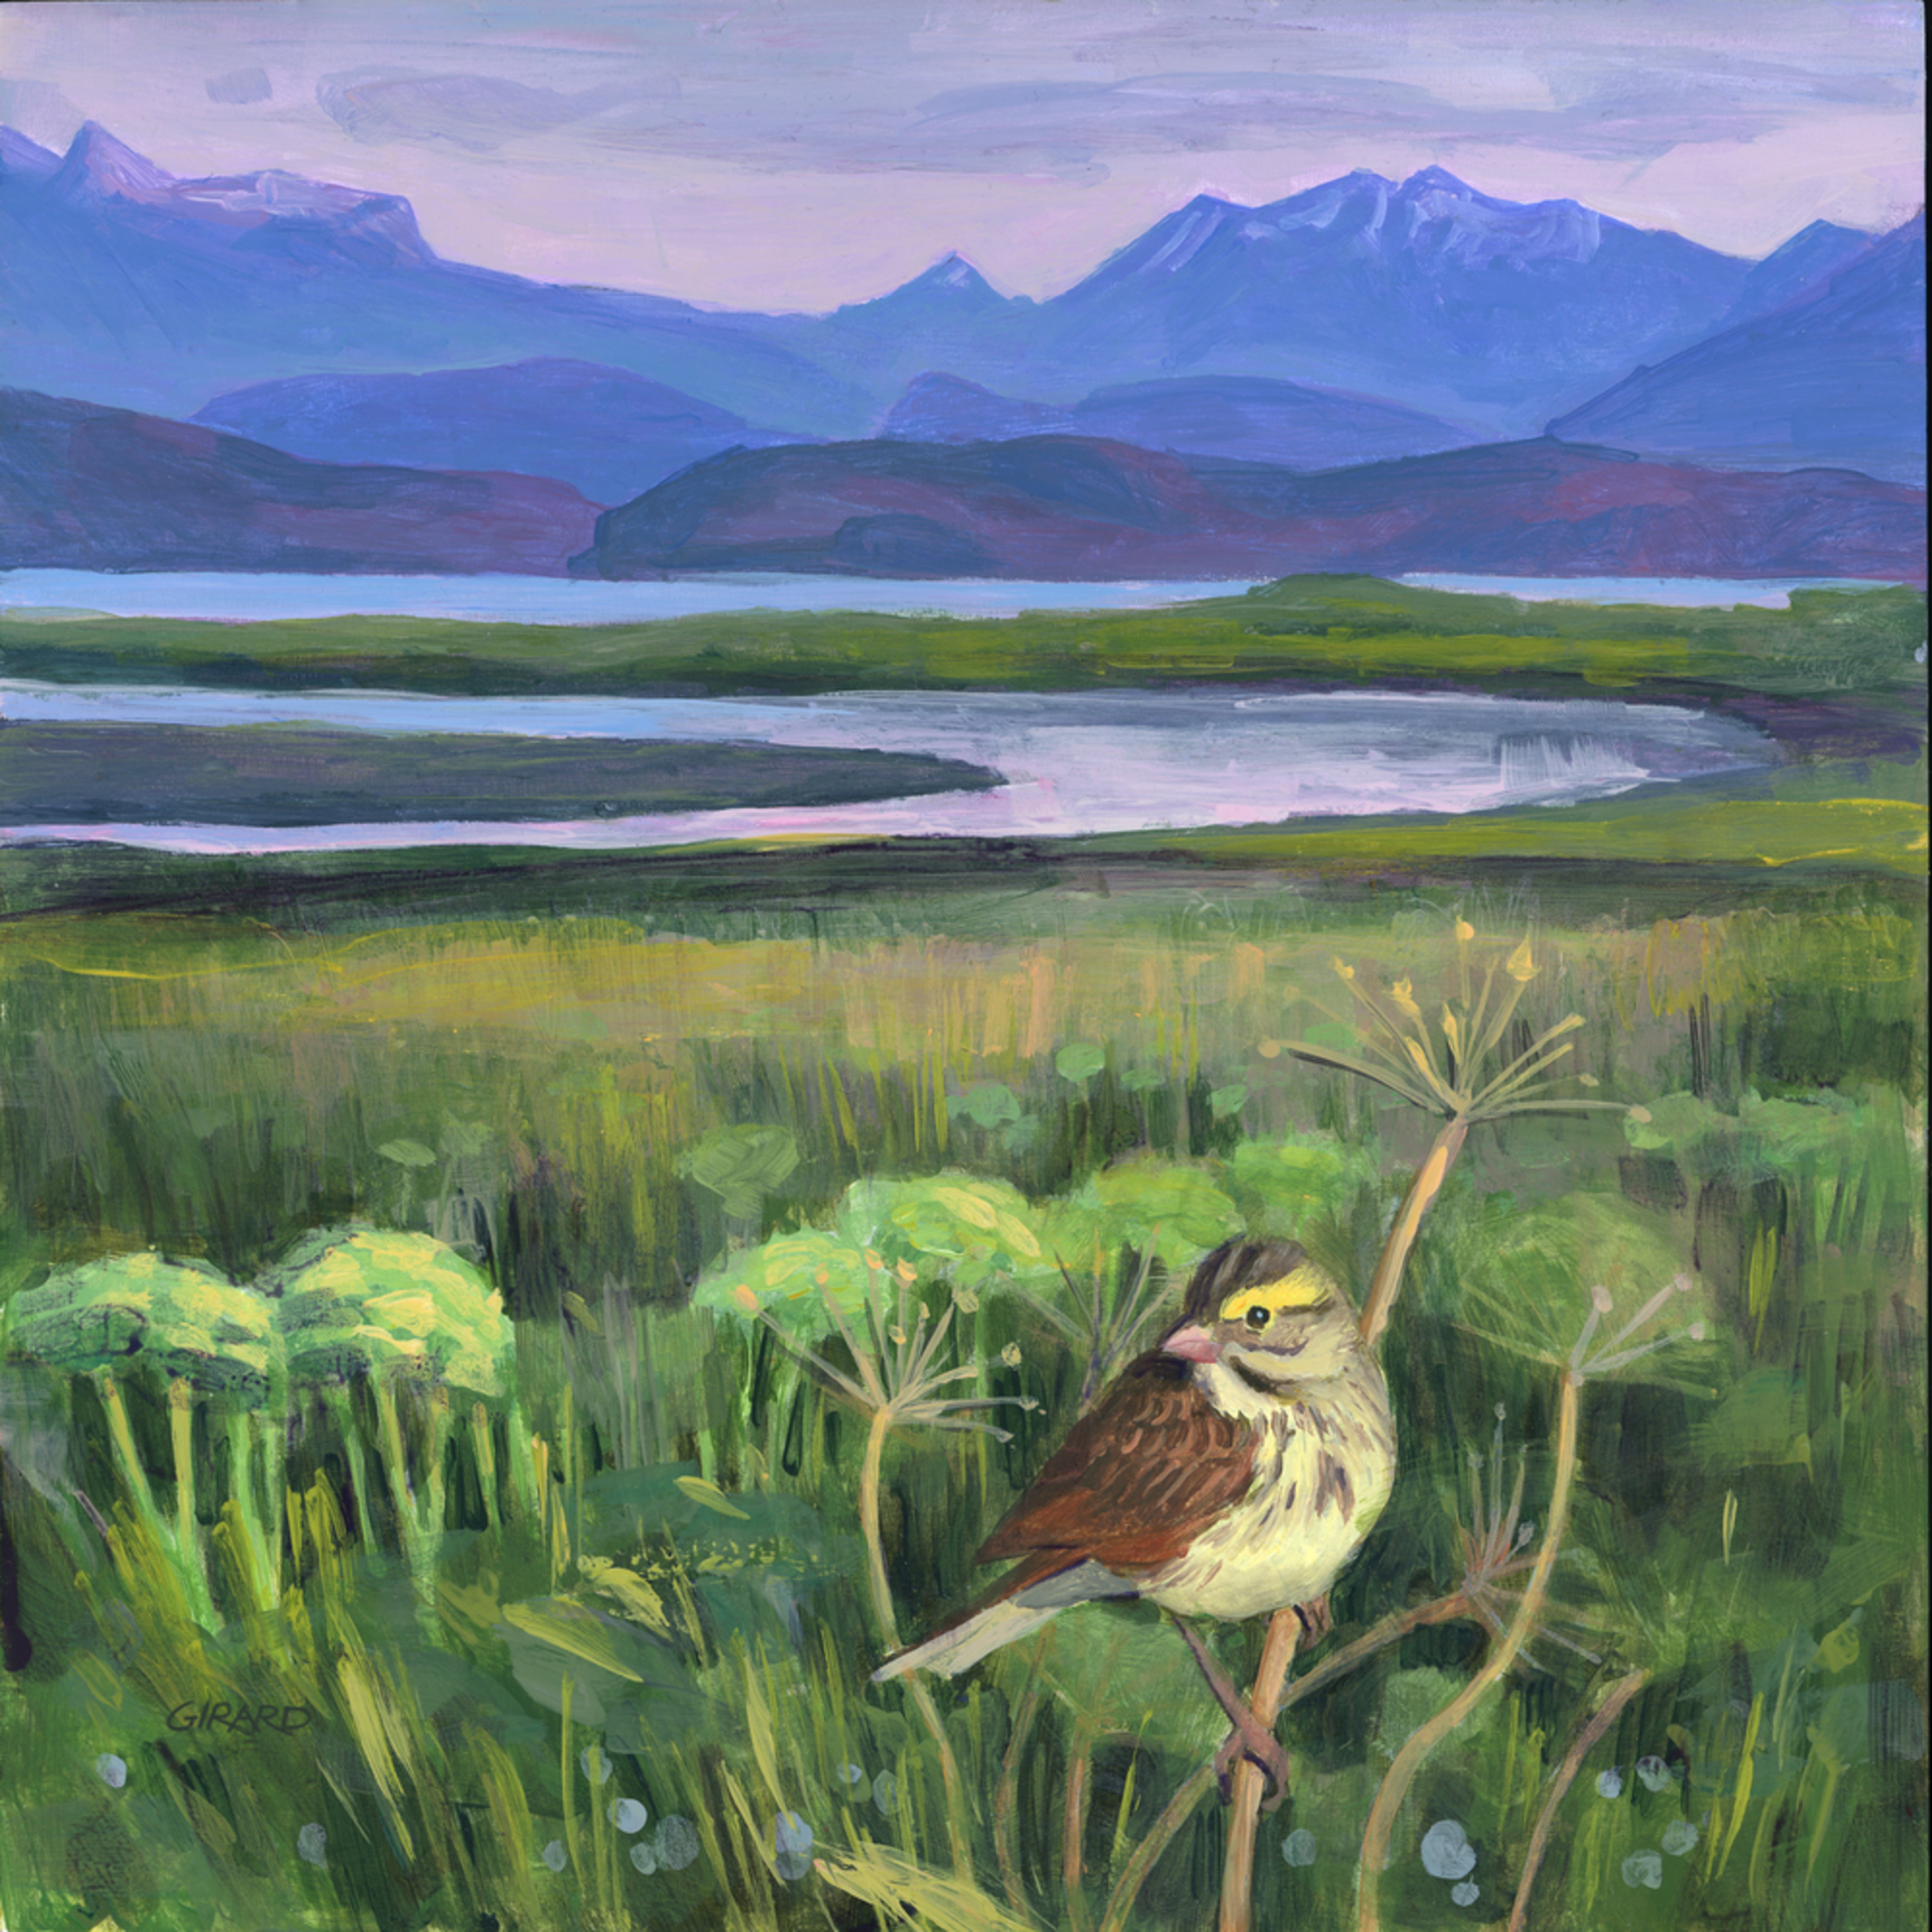 Savannah sparrow adjusted g2dnxq